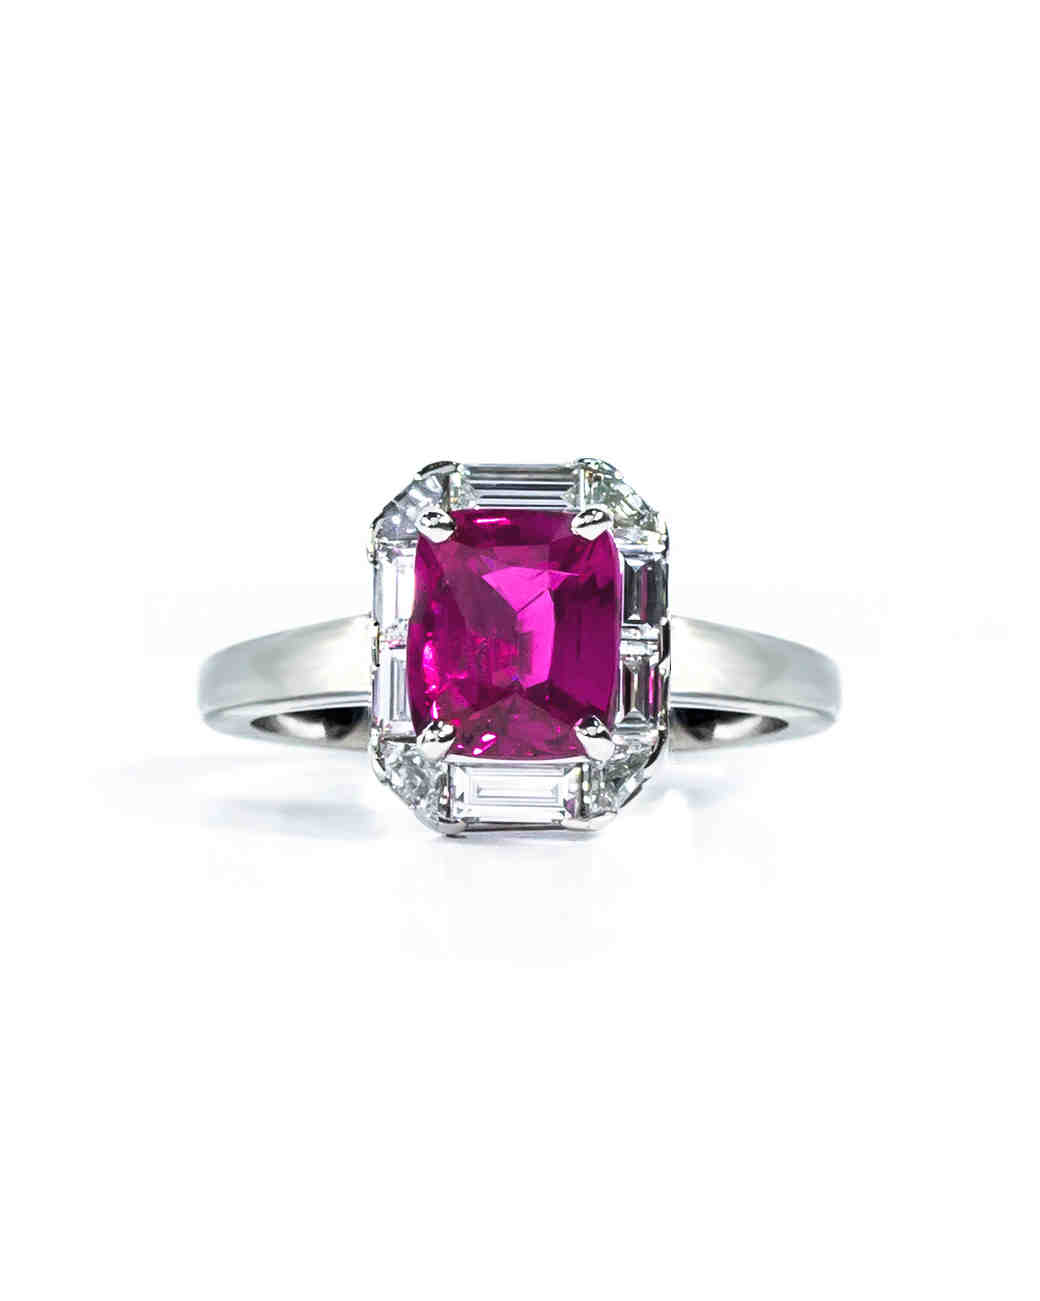 colored-engagement-rings-oscar-heyman-pink-sapphire-diamonds-0316.jpg